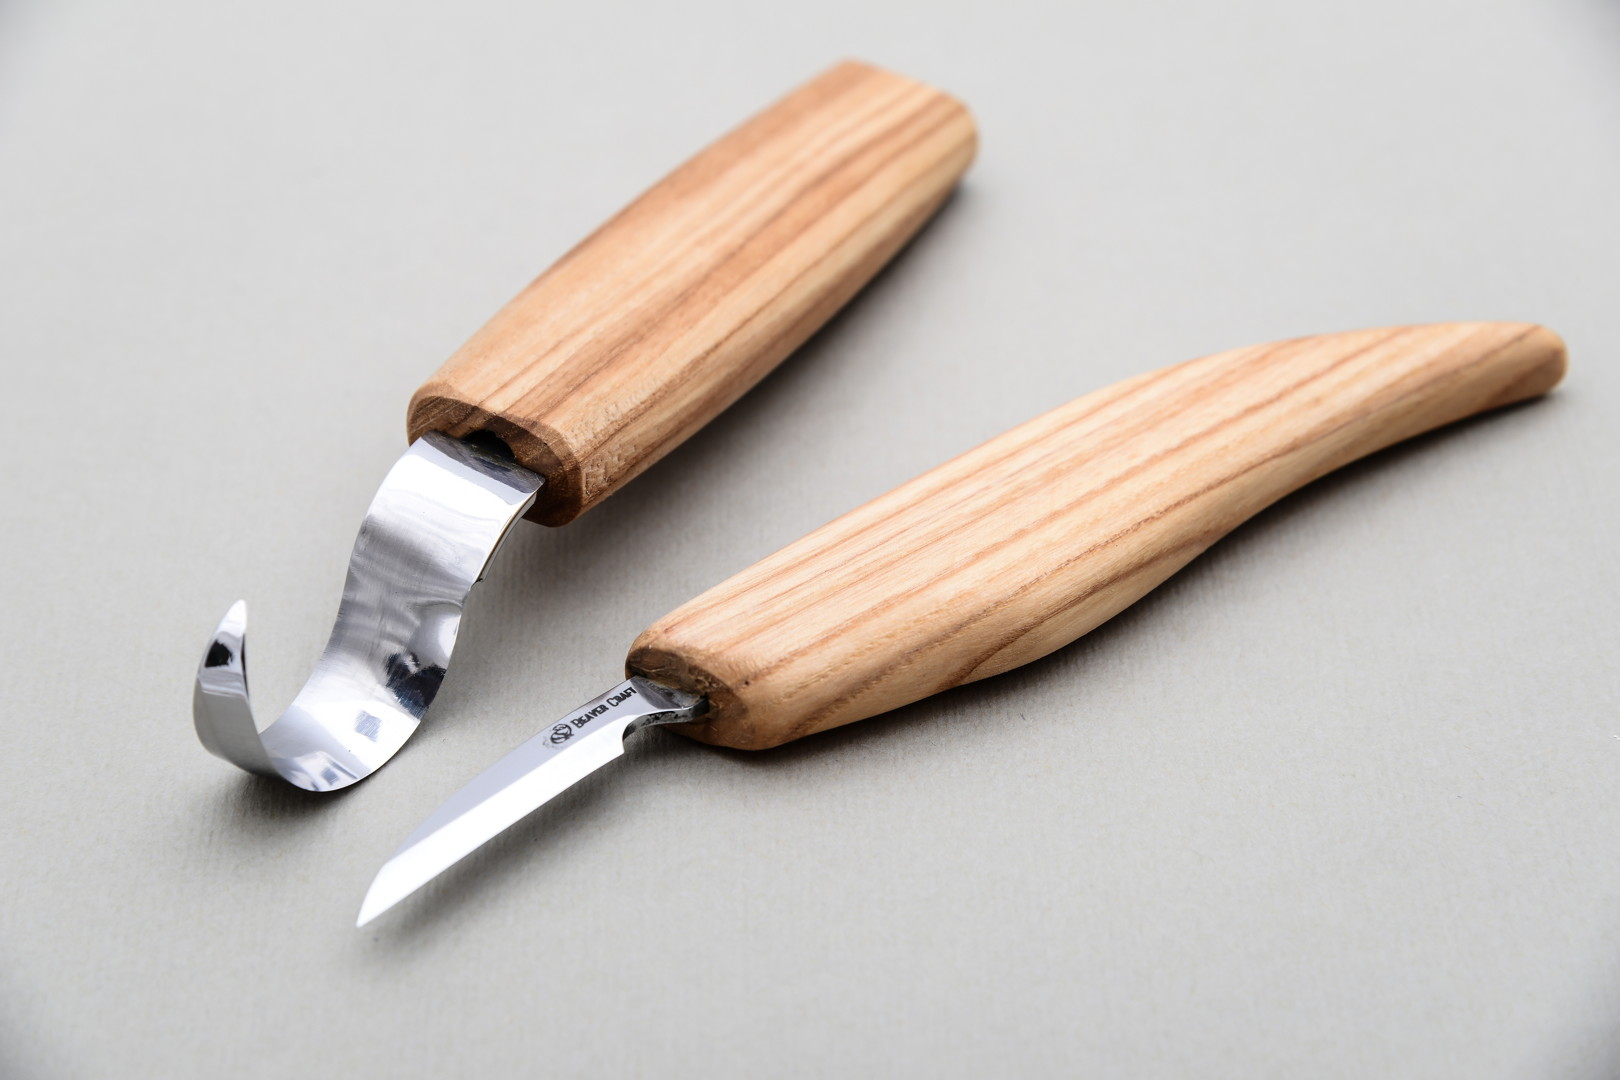 S — spoon carving set with small knife beavercraft